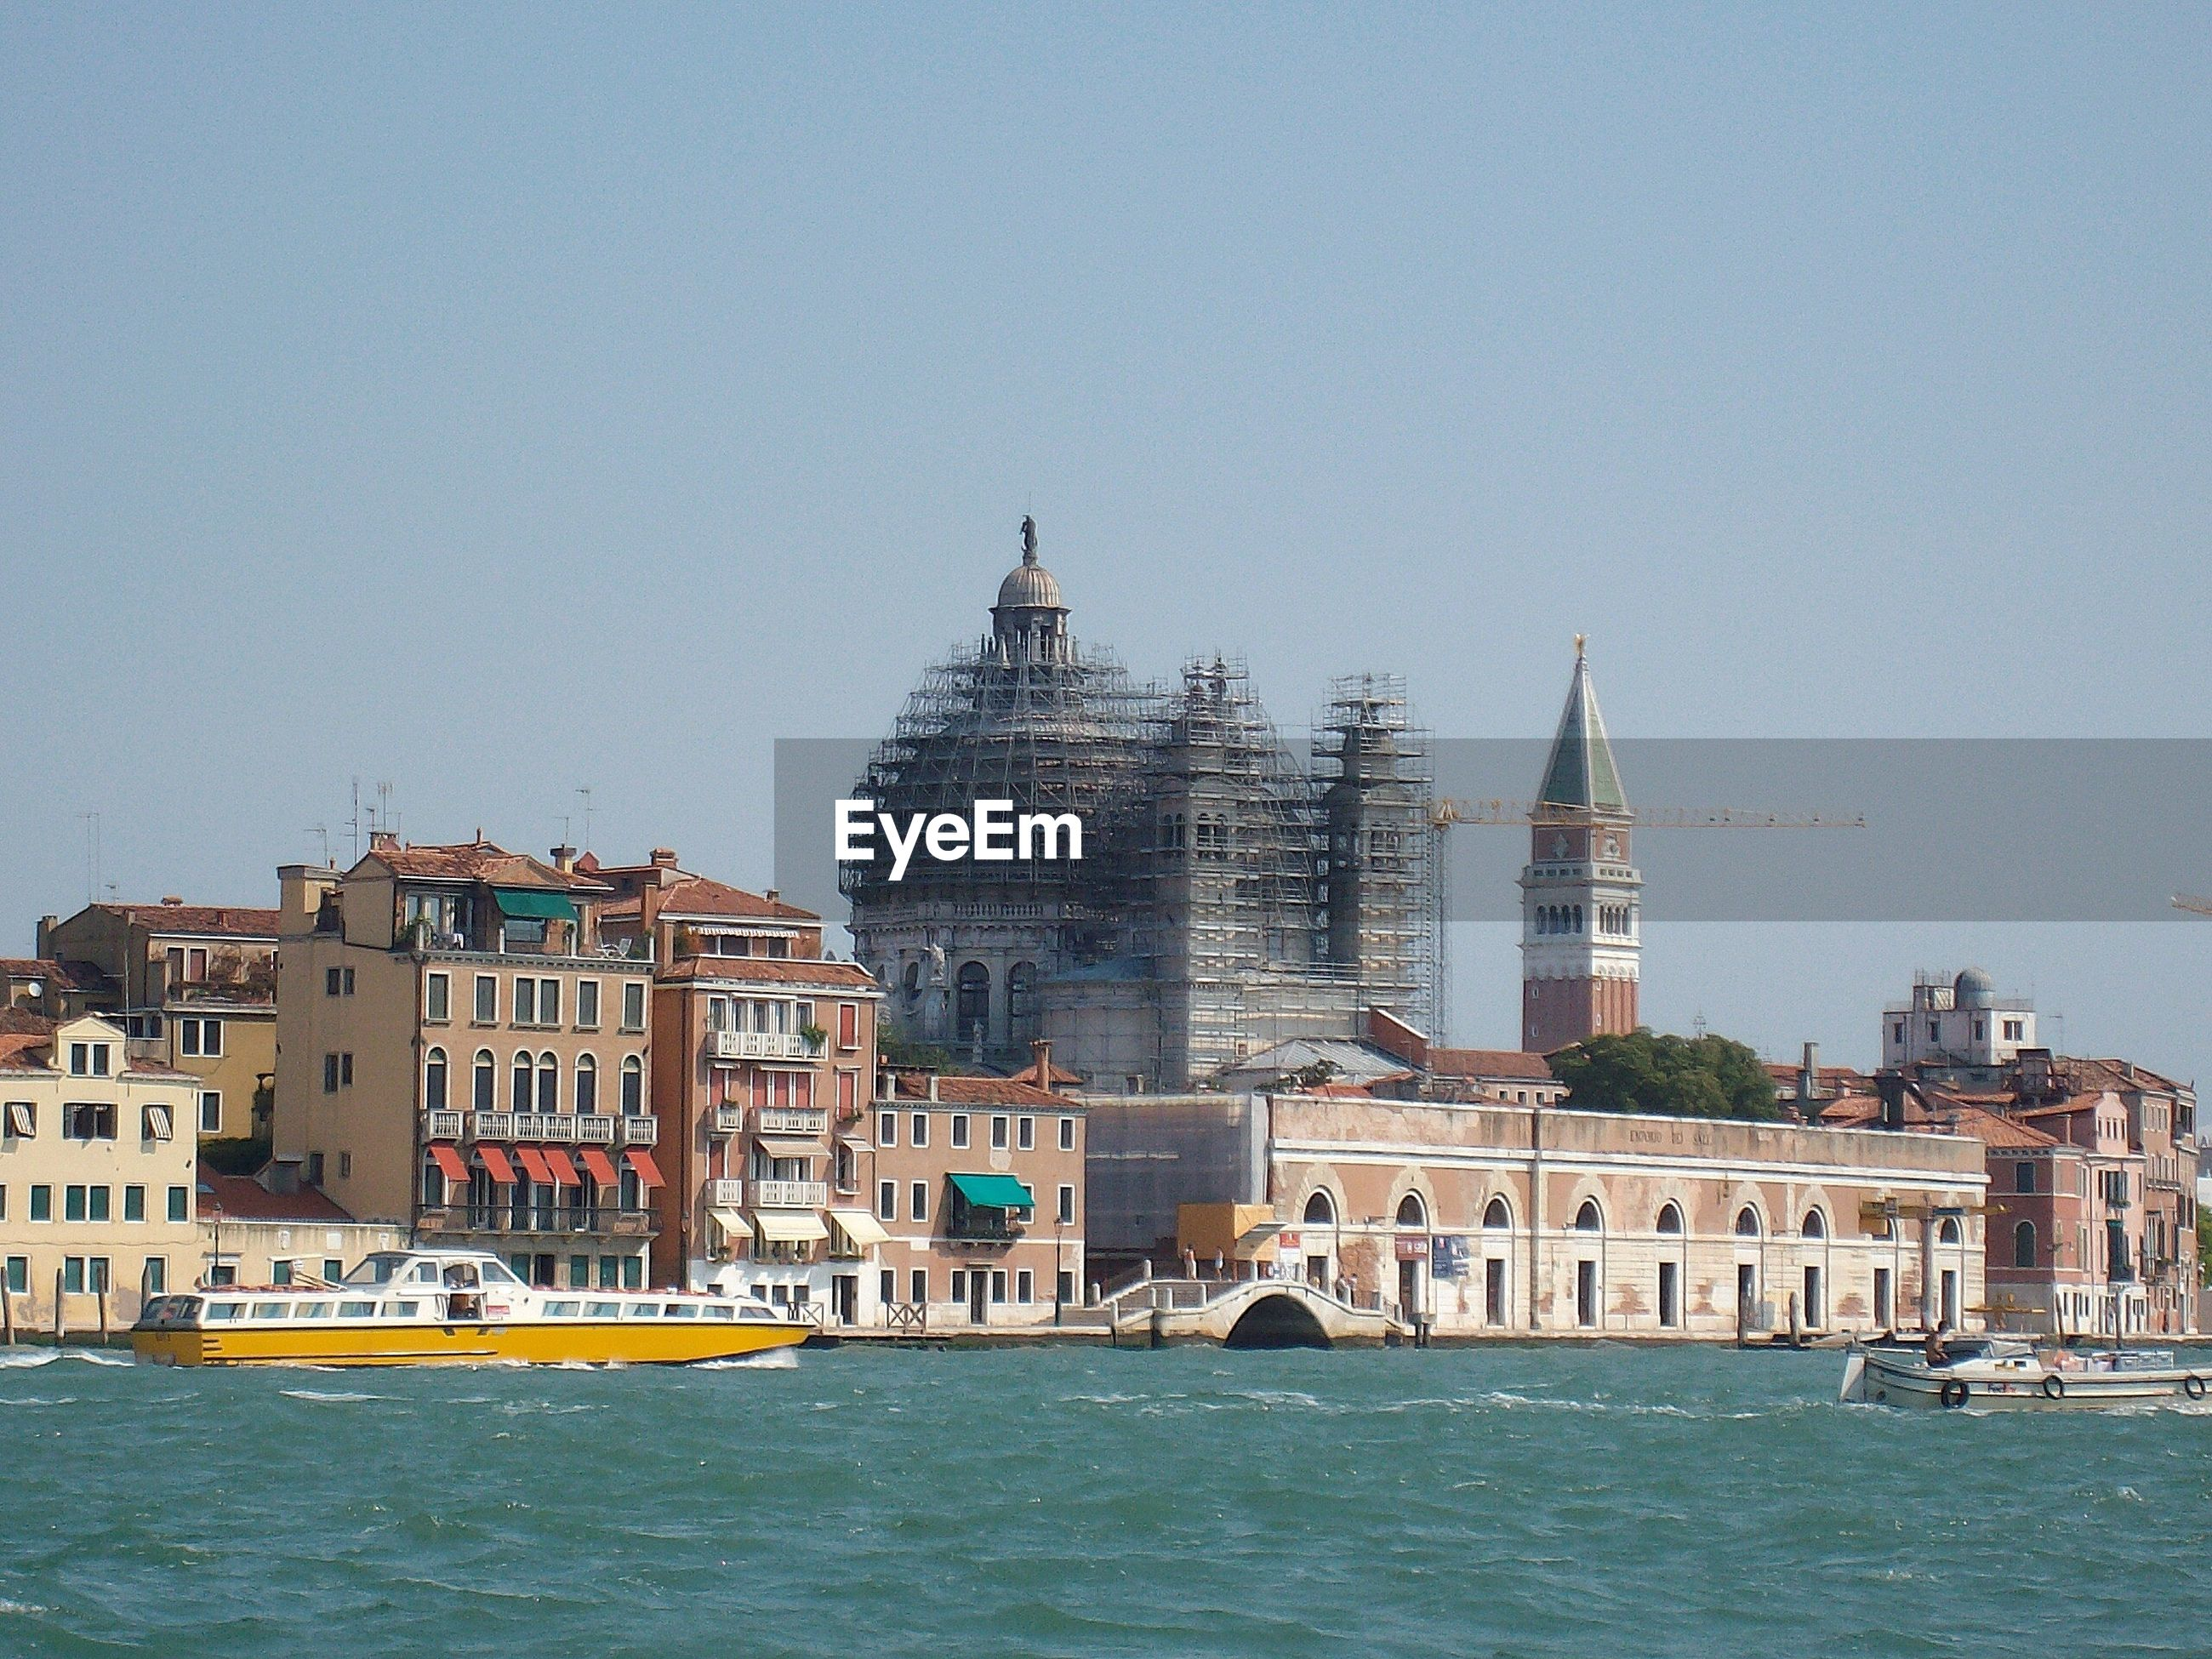 San marco campanile and incomplete santa maria della salute by canal against clear sky